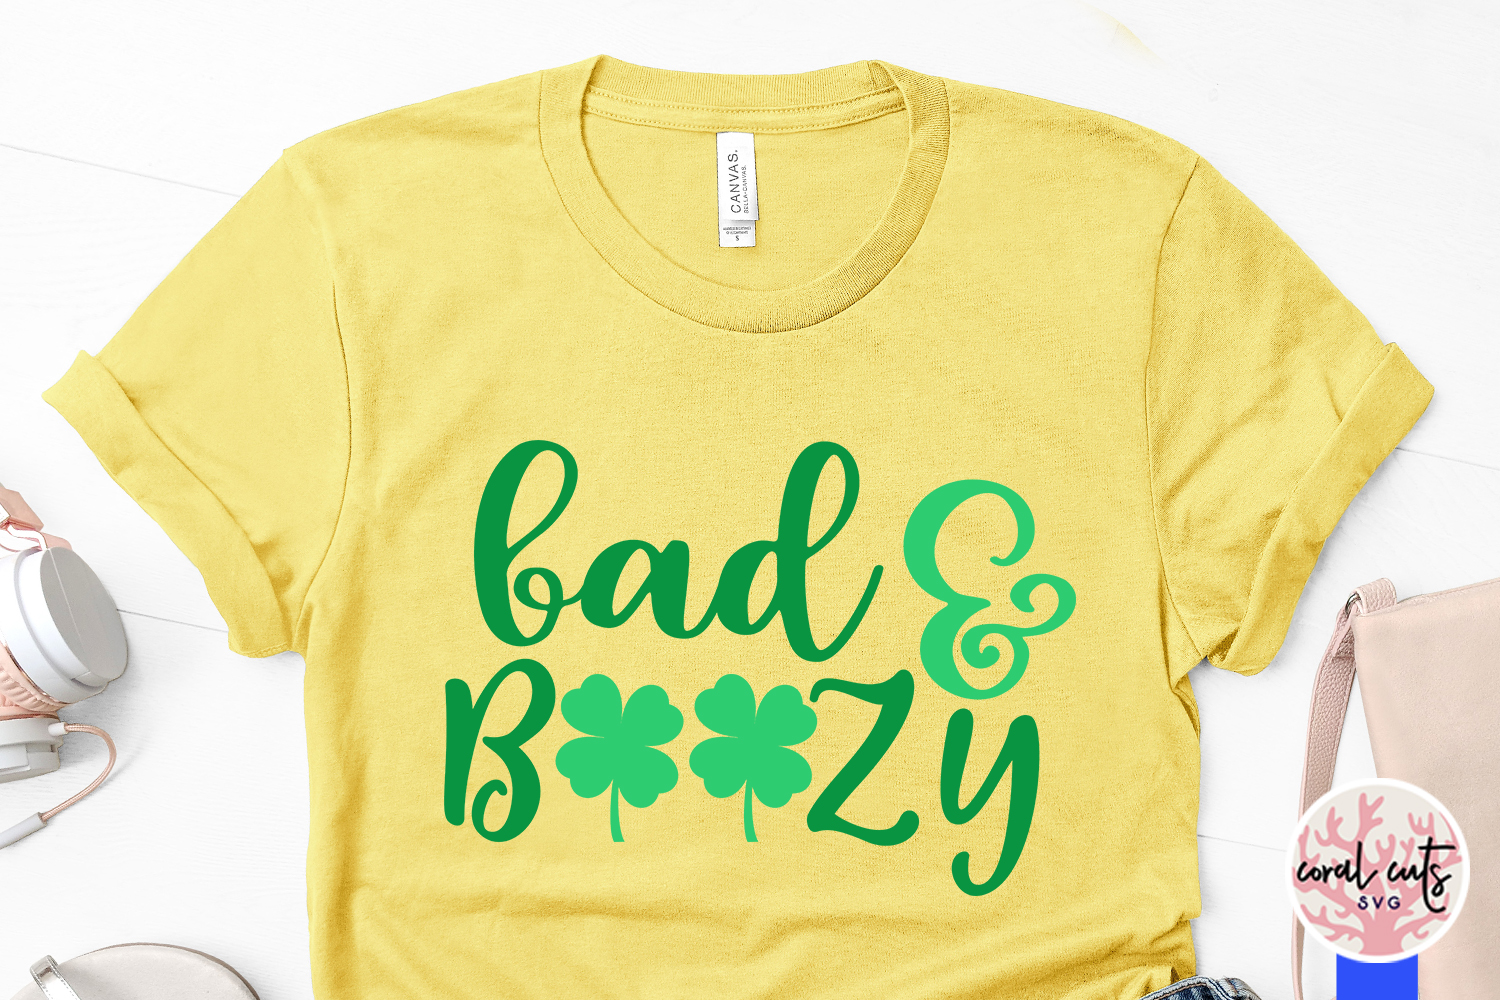 Bad & boozy - St. Patrick's Day SVG EPS DXF PNG example image 3